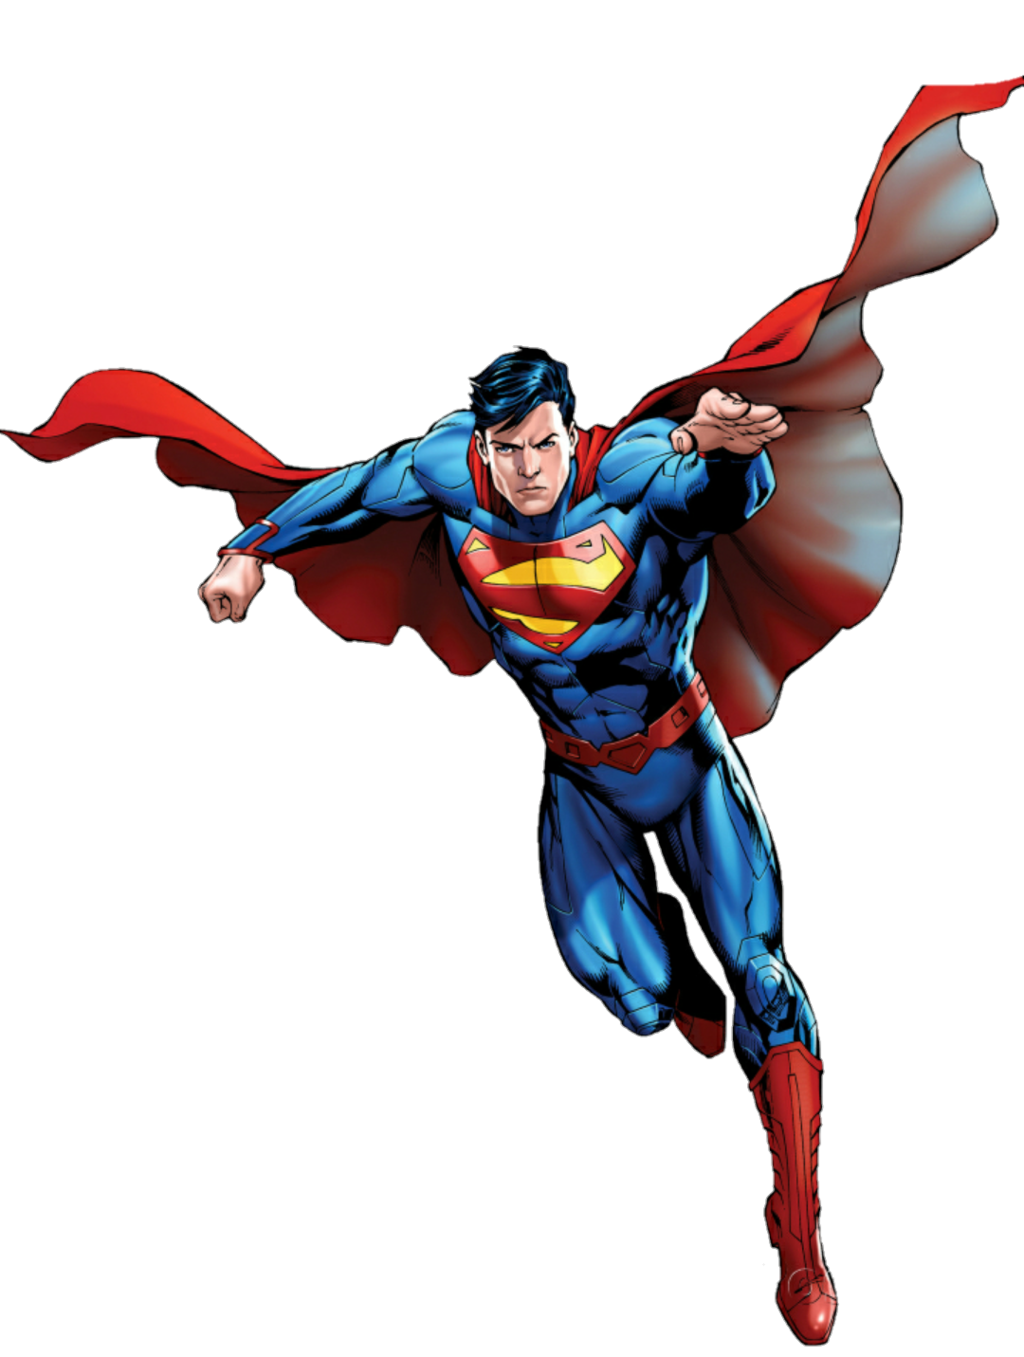 Free high resolution comic book clipart freeuse library Superman PNG Image - PurePNG | Free transparent CC0 PNG Image Library freeuse library